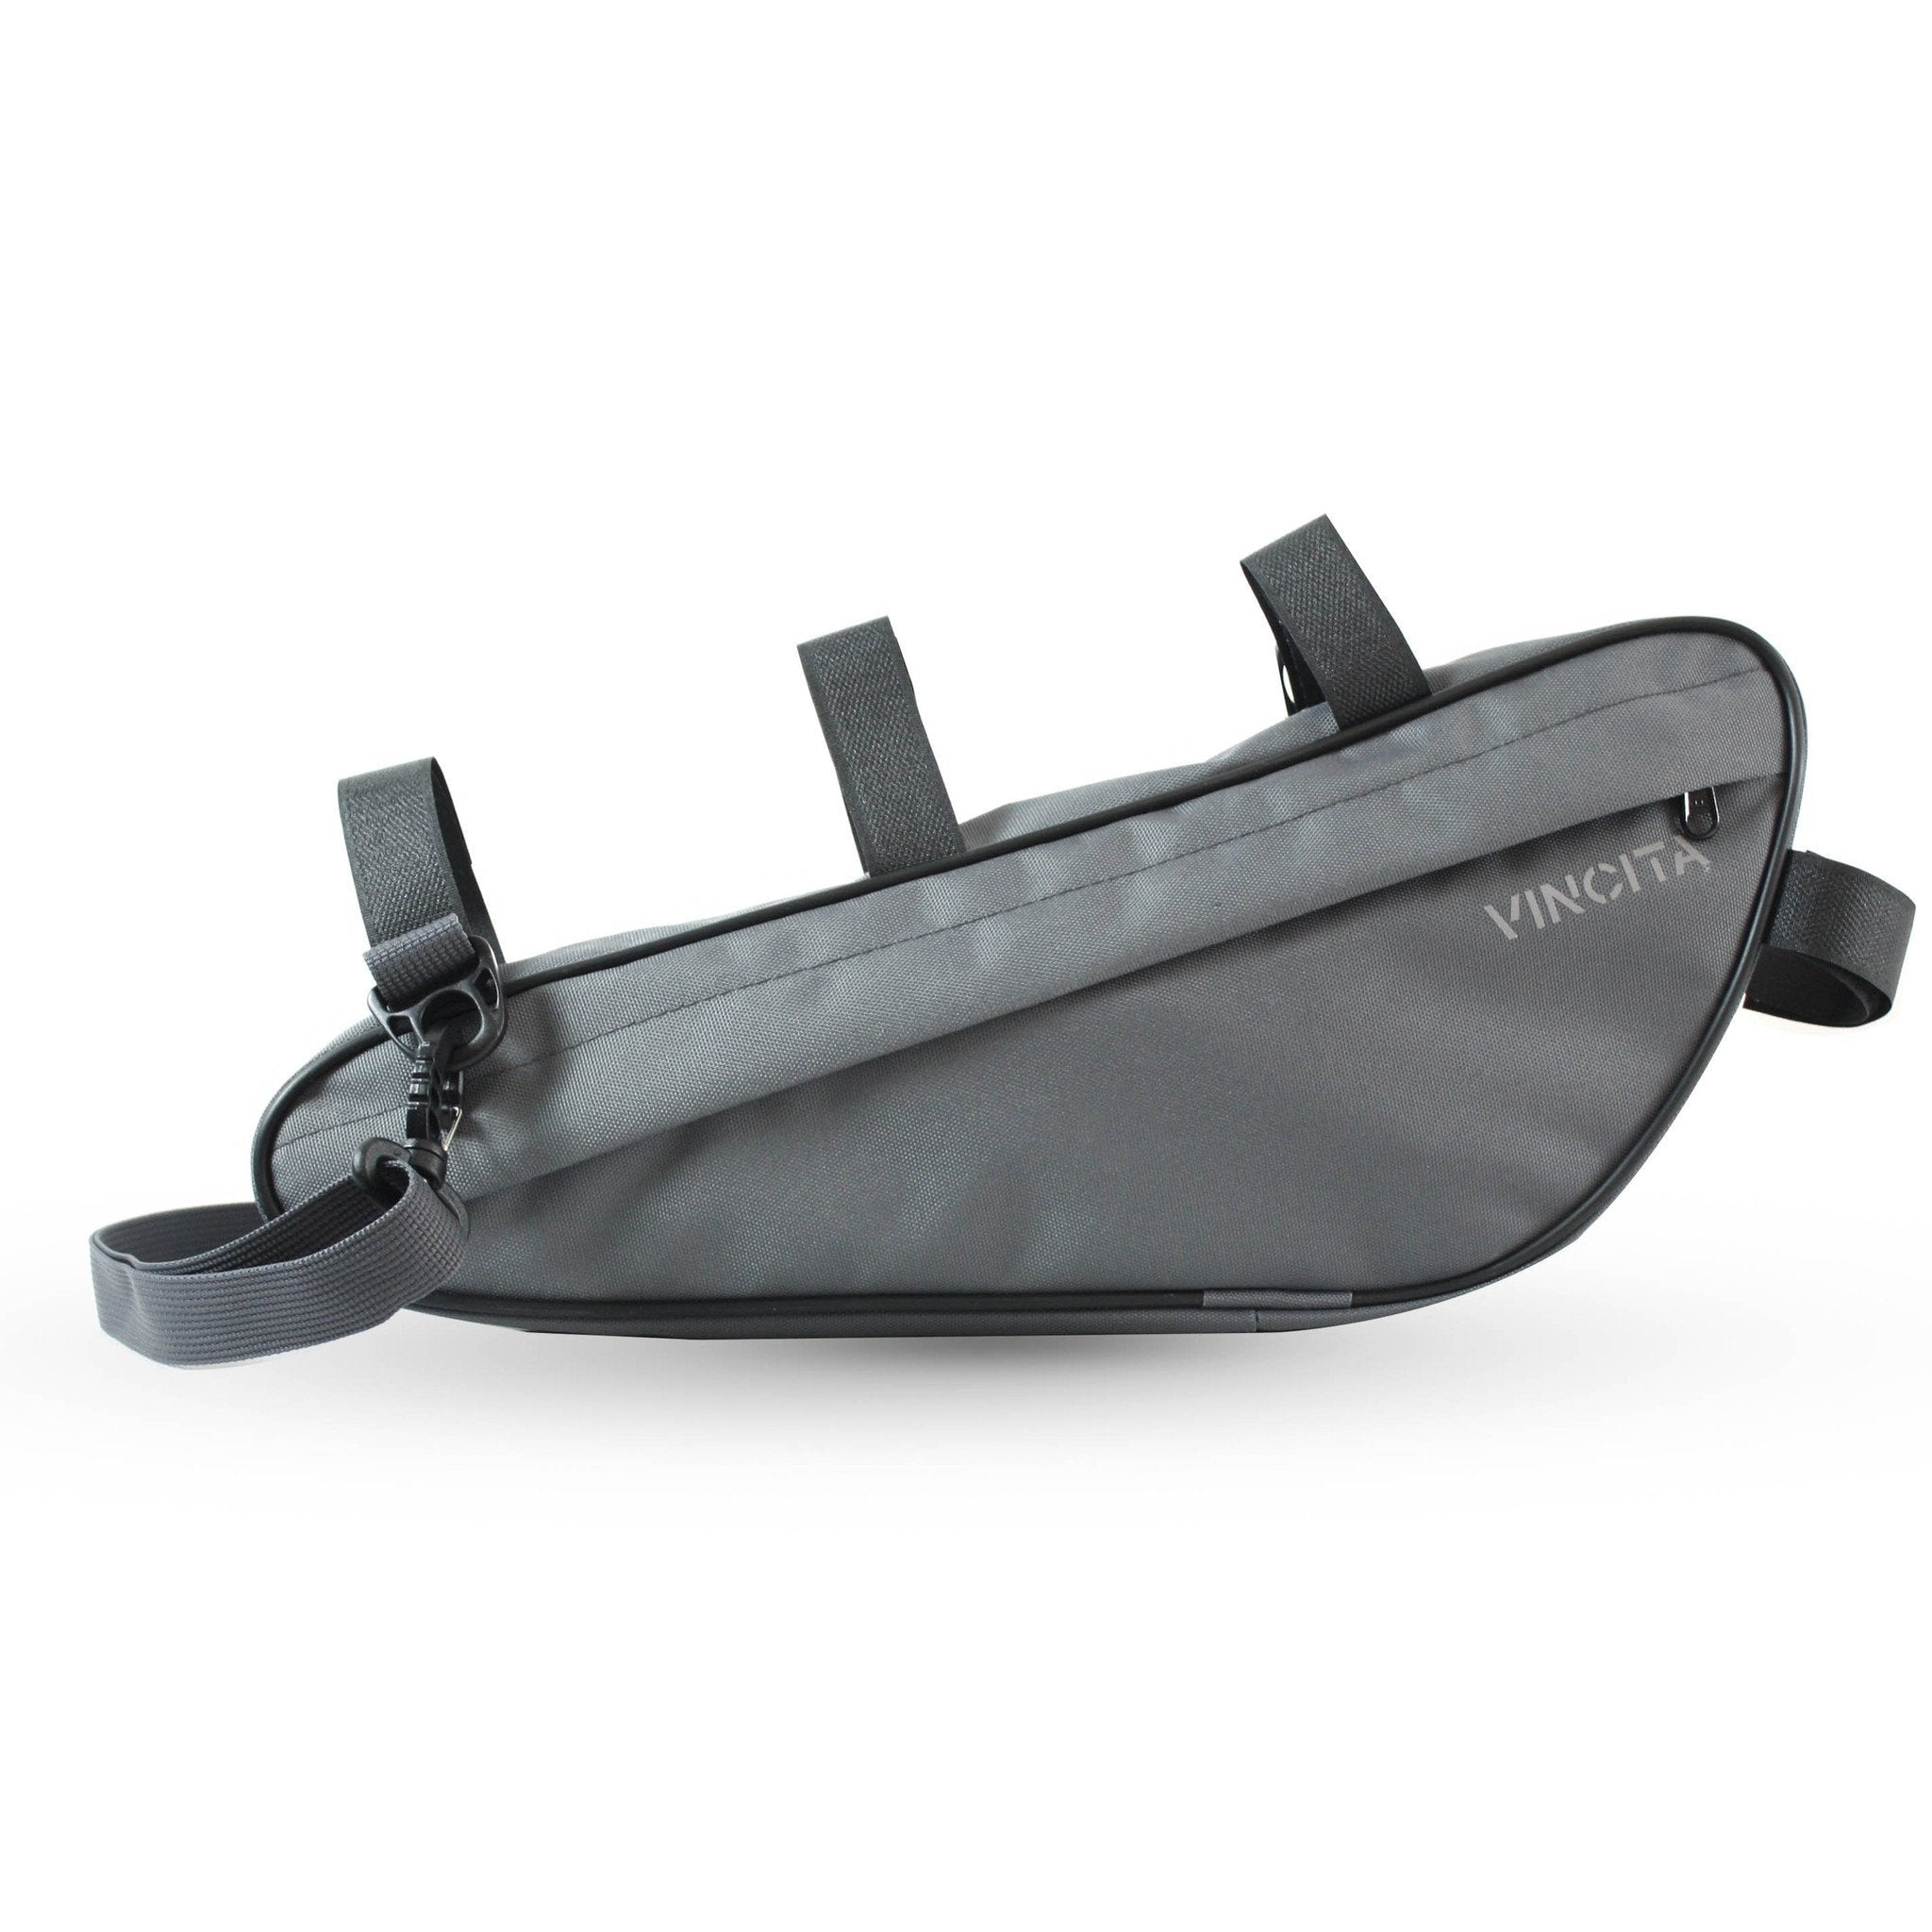 Vincita Co., Ltd. bicycle bag gray / th B024L